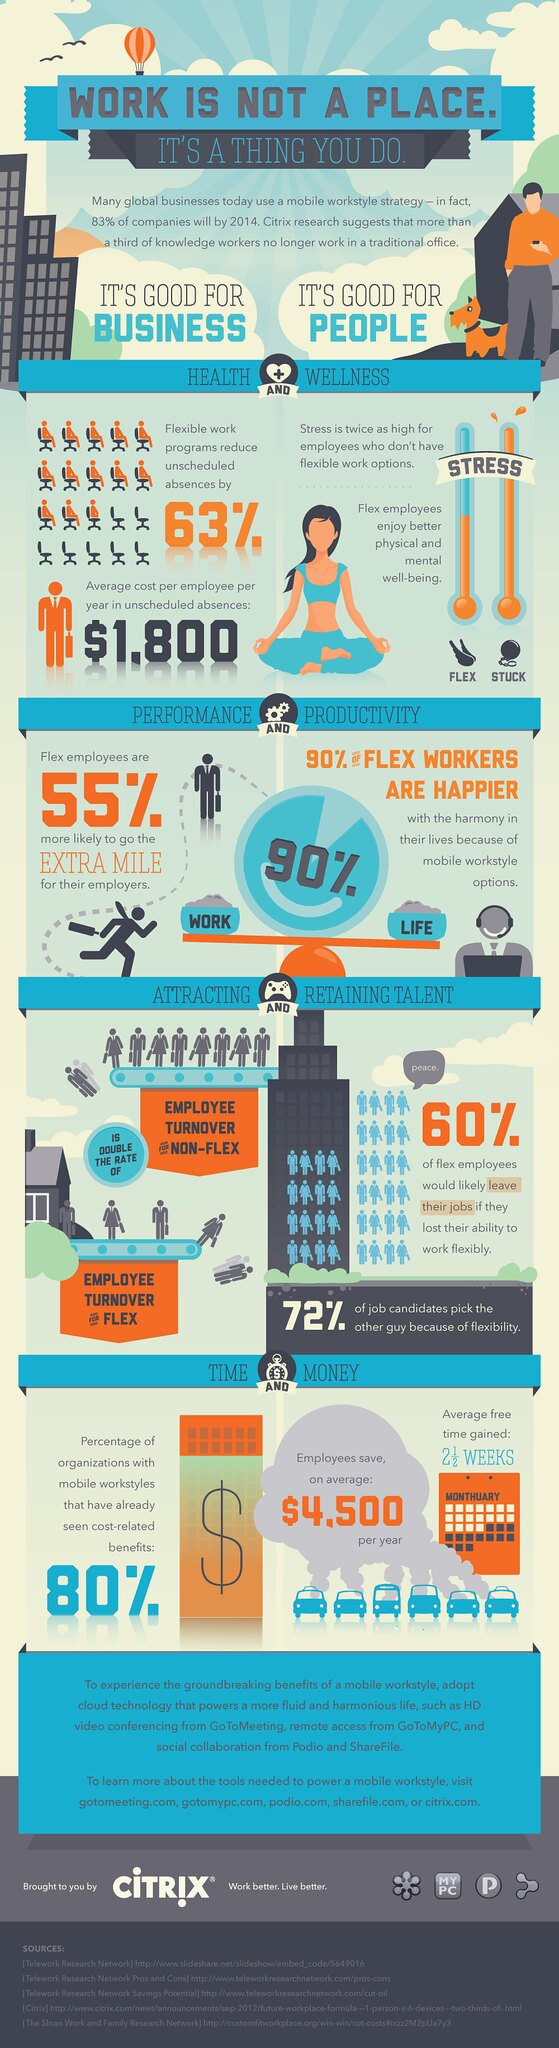 Mobile Workstyles Infographic